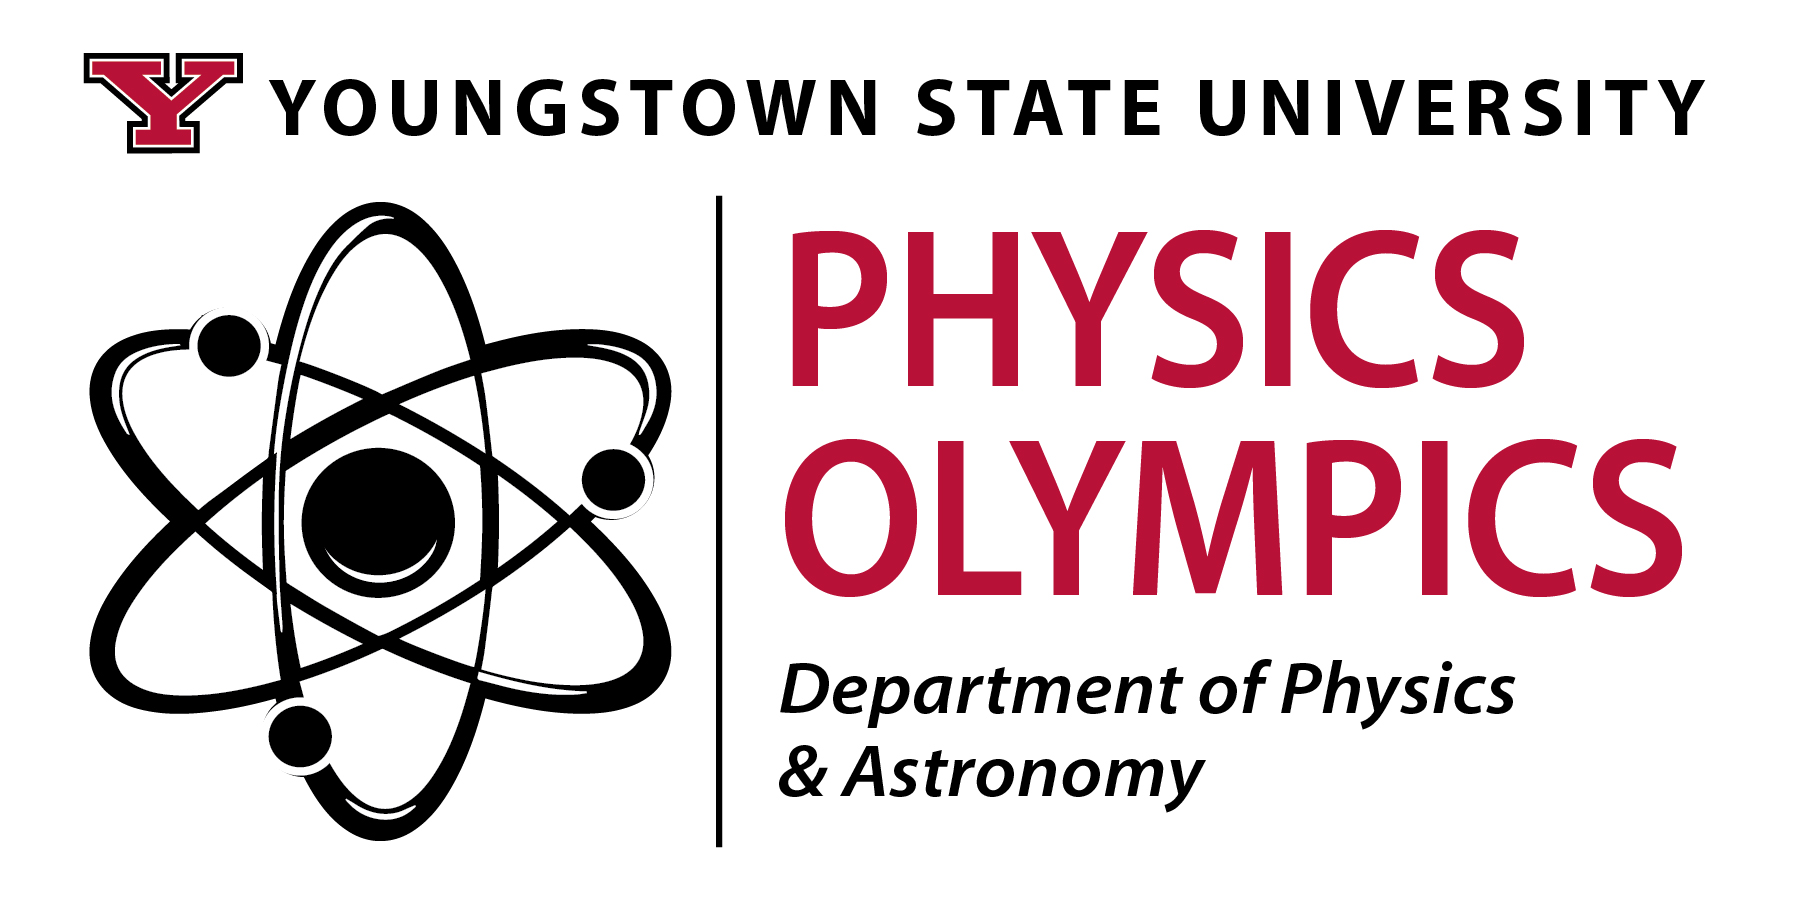 PhysicsOlympics Icon red text-01.jpg